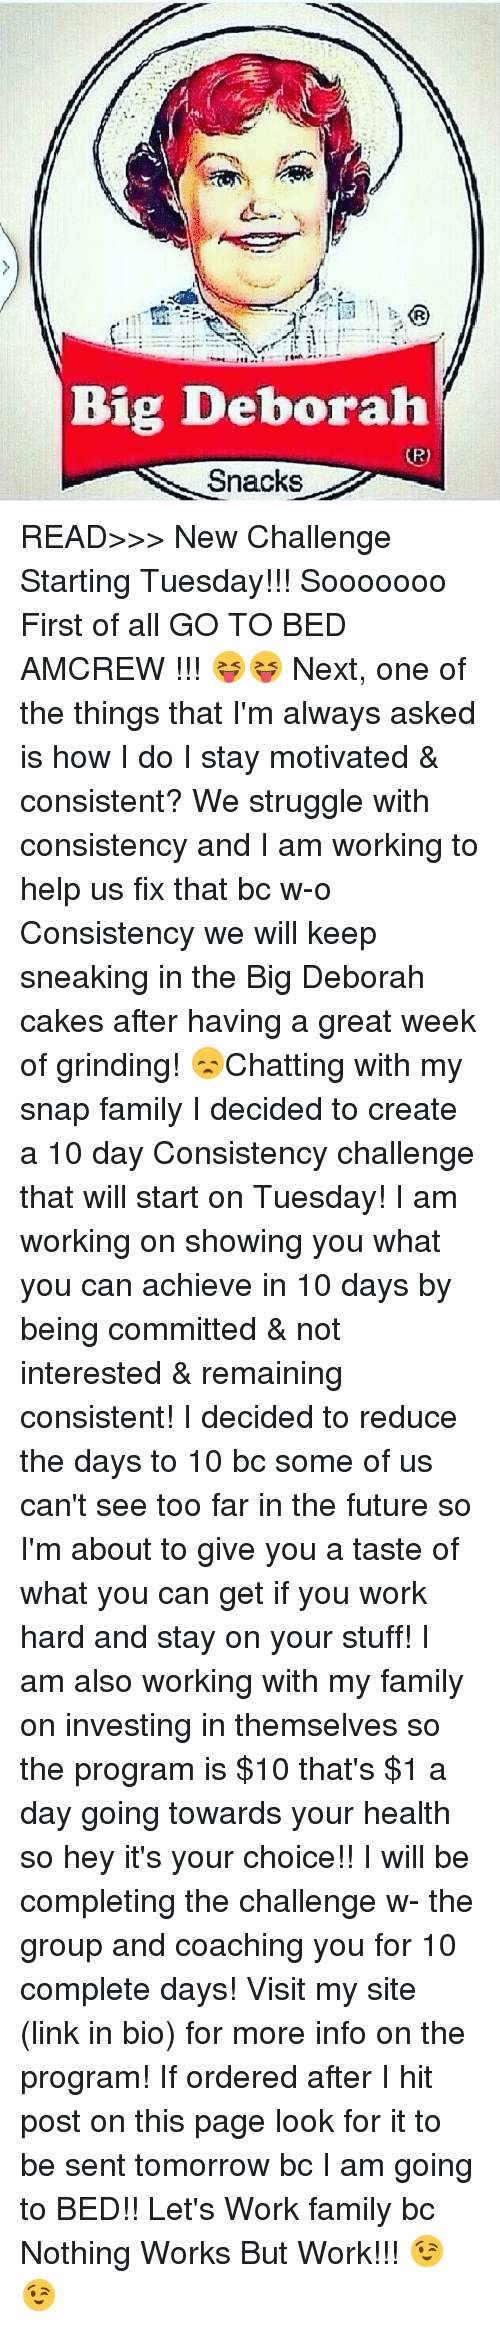 Big Deborah: Big Deborah  Snacks READ>>> New Challenge Starting Tuesday!!! Sooooooo First of all GO TO BED AMCREW !!! 😝😝 Next, one of the things that I'm always asked is how I do I stay motivated & consistent? We struggle with consistency and I am working to help us fix that bc w-o Consistency we will keep sneaking in the Big Deborah cakes after having a great week of grinding! 😞Chatting with my snap family I decided to create a 10 day Consistency challenge that will start on Tuesday! I am working on showing you what you can achieve in 10 days by being committed & not interested & remaining consistent! I decided to reduce the days to 10 bc some of us can't see too far in the future so I'm about to give you a taste of what you can get if you work hard and stay on your stuff! I am also working with my family on investing in themselves so the program is $10 that's $1 a day going towards your health so hey it's your choice!! I will be completing the challenge w- the group and coaching you for 10 complete days! Visit my site (link in bio) for more info on the program! If ordered after I hit post on this page look for it to be sent tomorrow bc I am going to BED!! Let's Work family bc Nothing Works But Work!!! 😉😉